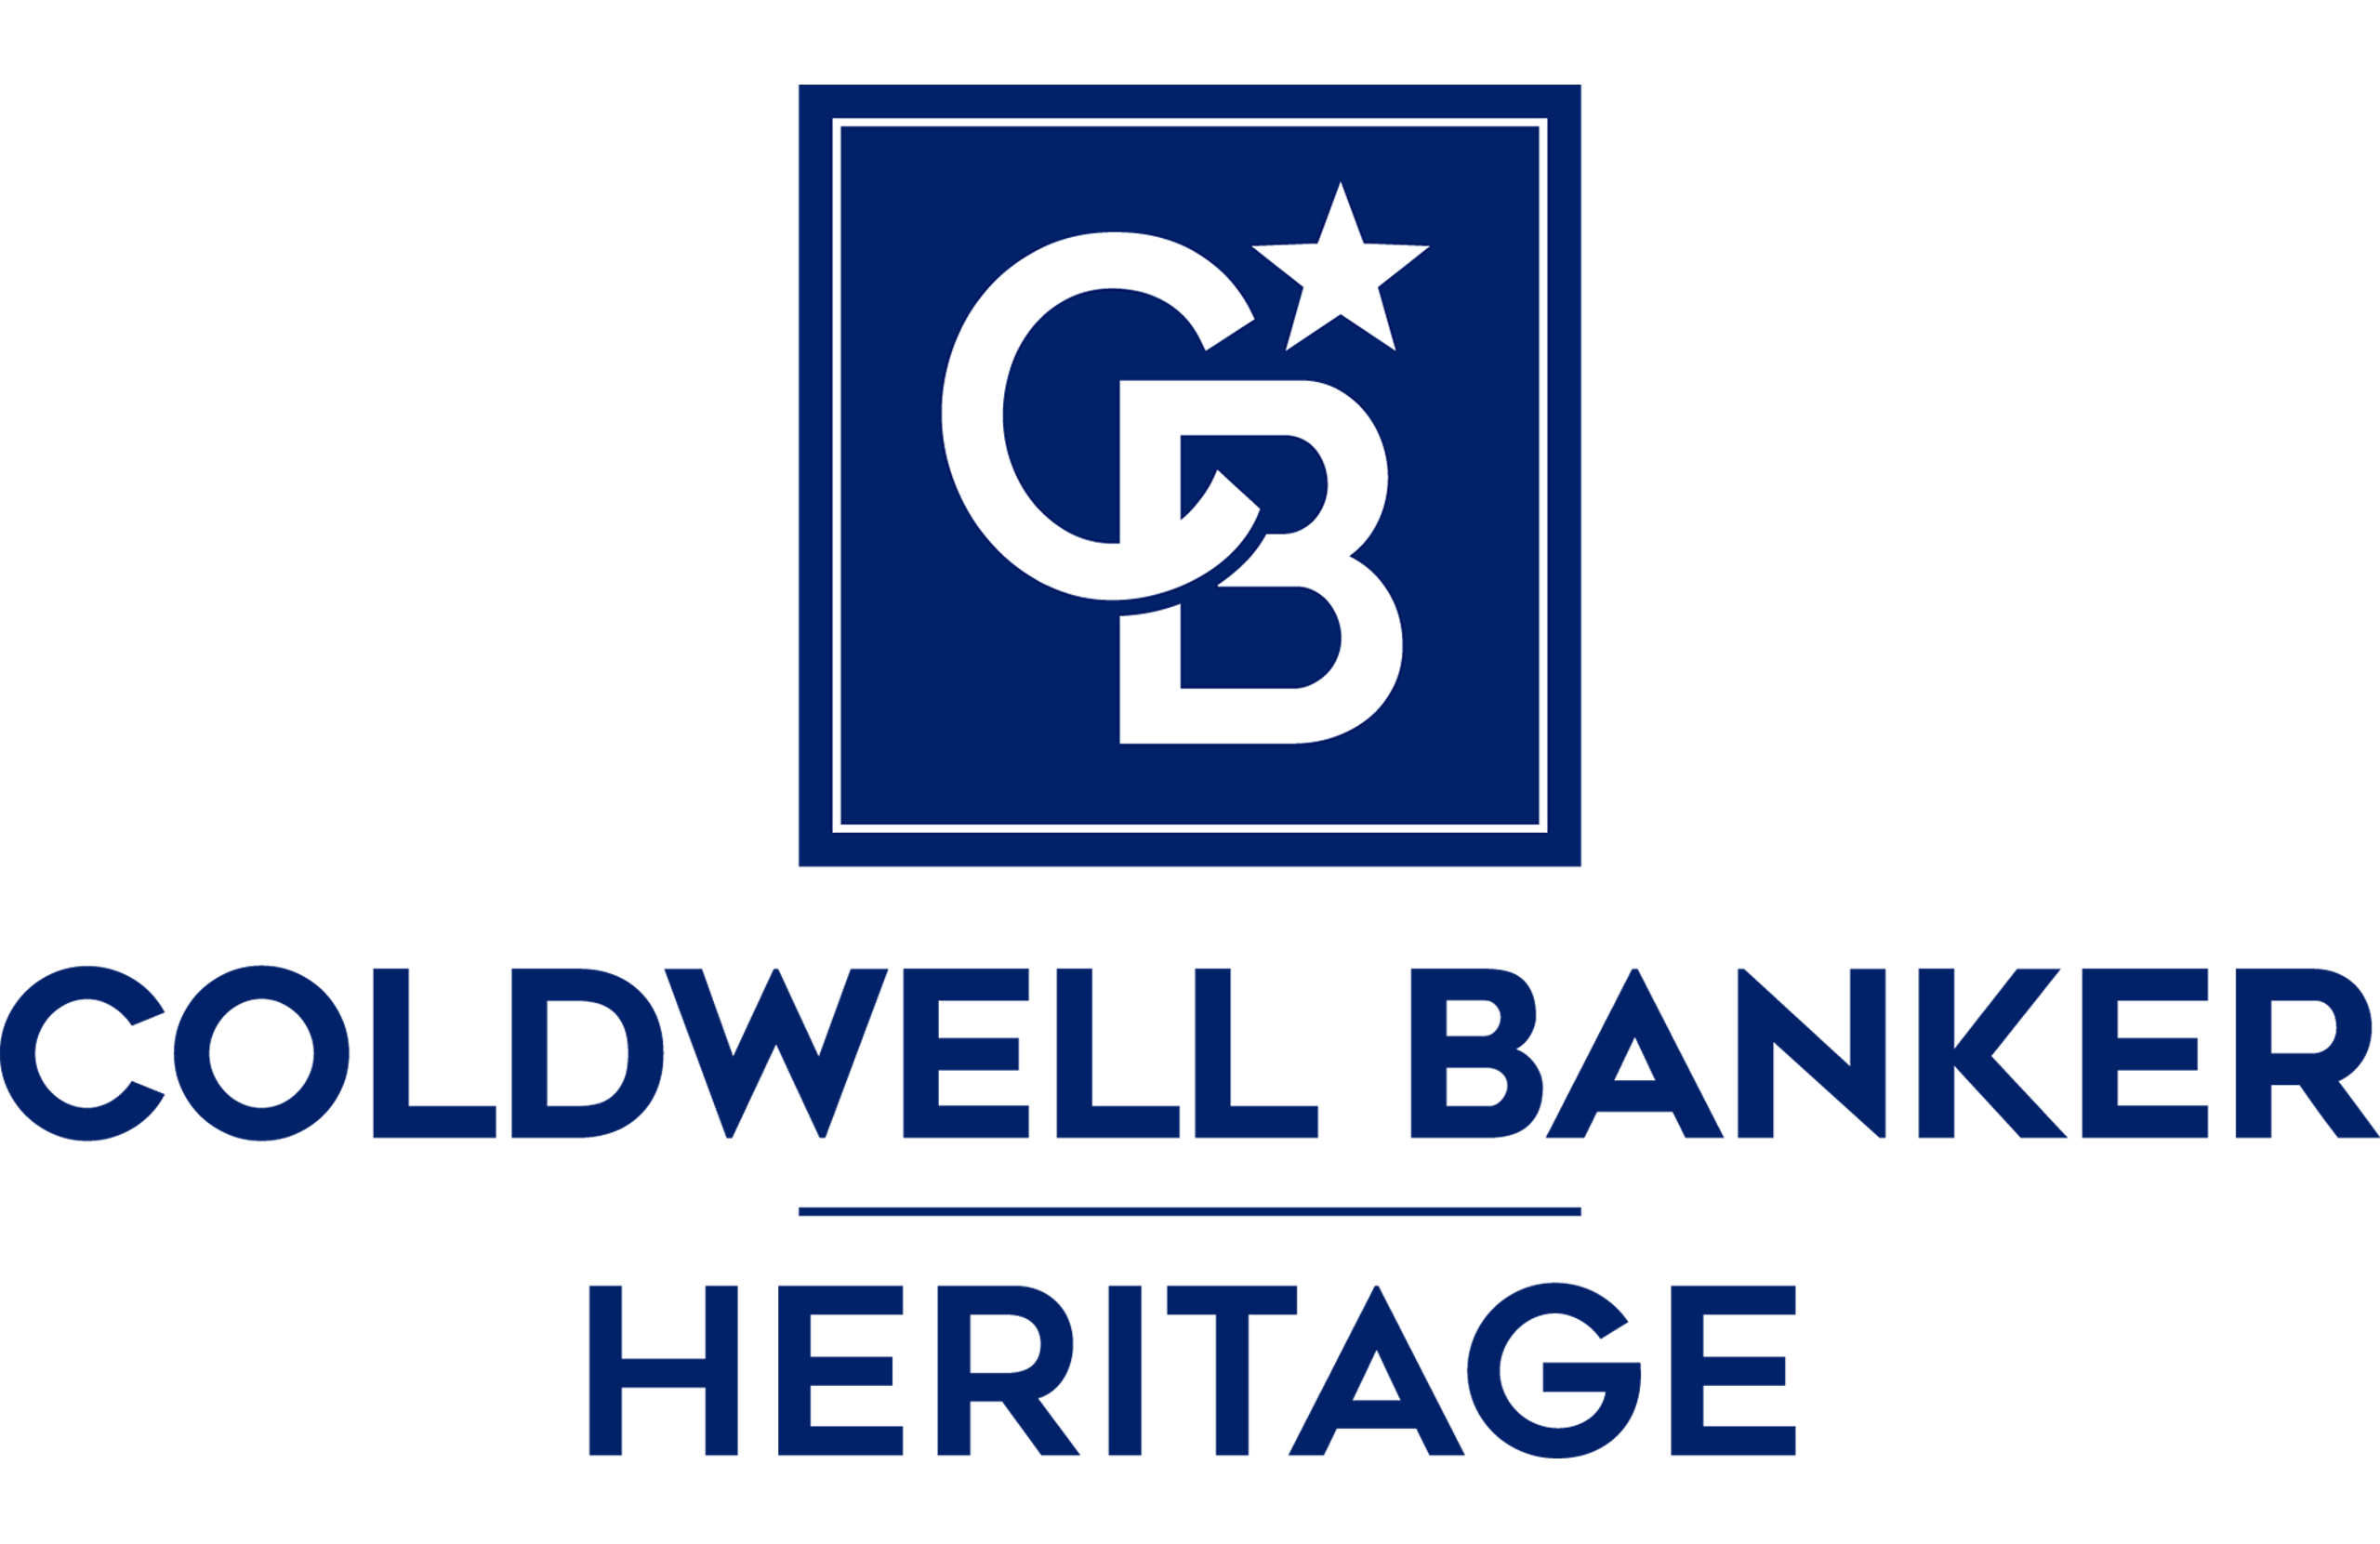 Ashley Zimorski - Coldwell Banker Heritage